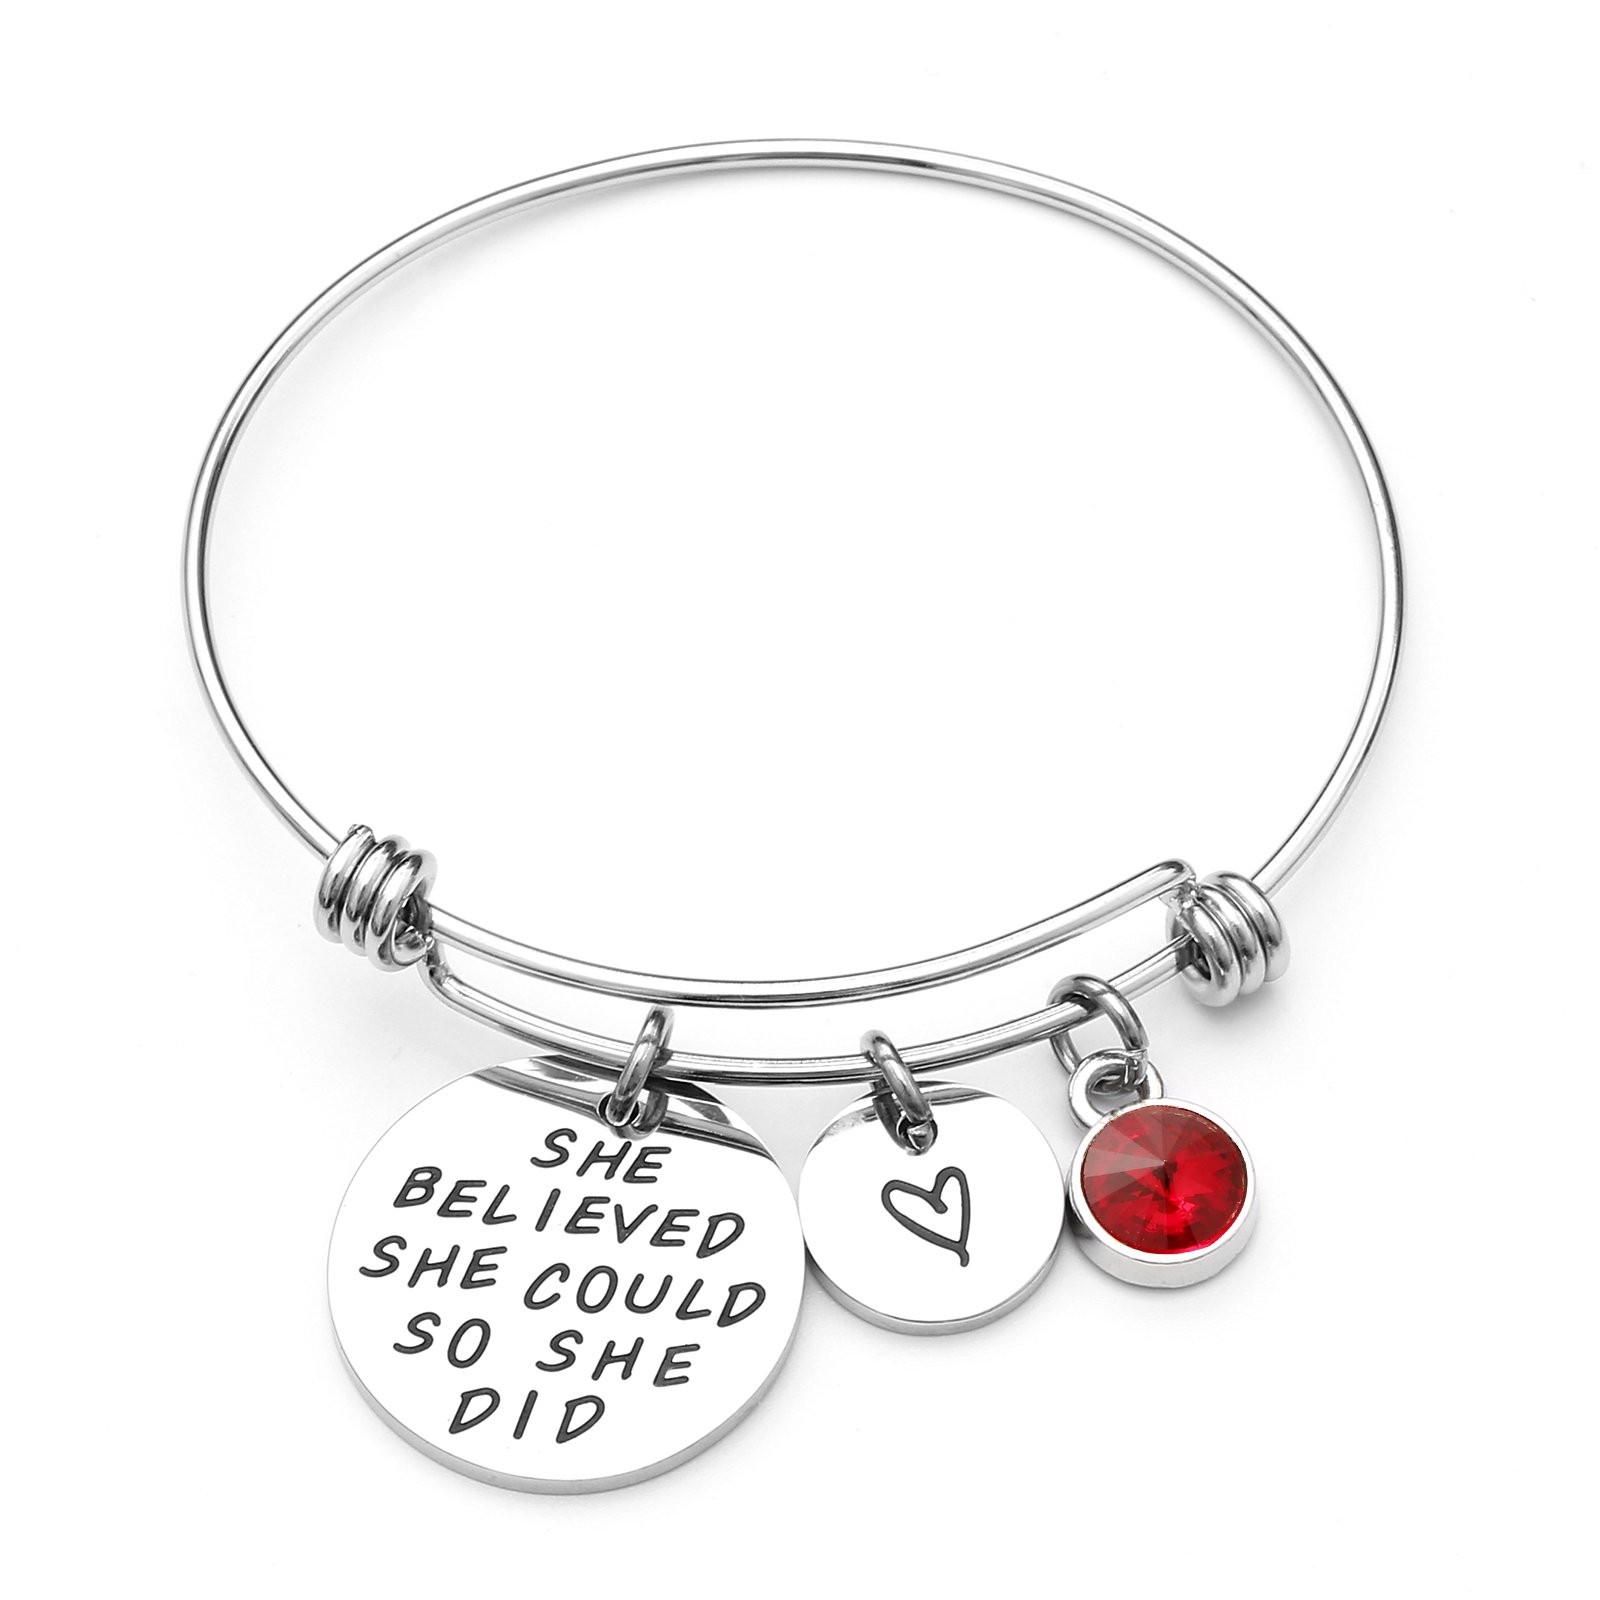 LIUANAN She belived she Could so she did Inspirational Bracelet Expandable Bangle Birthstone Stainless Steel Cuff (Ruby-July) ...